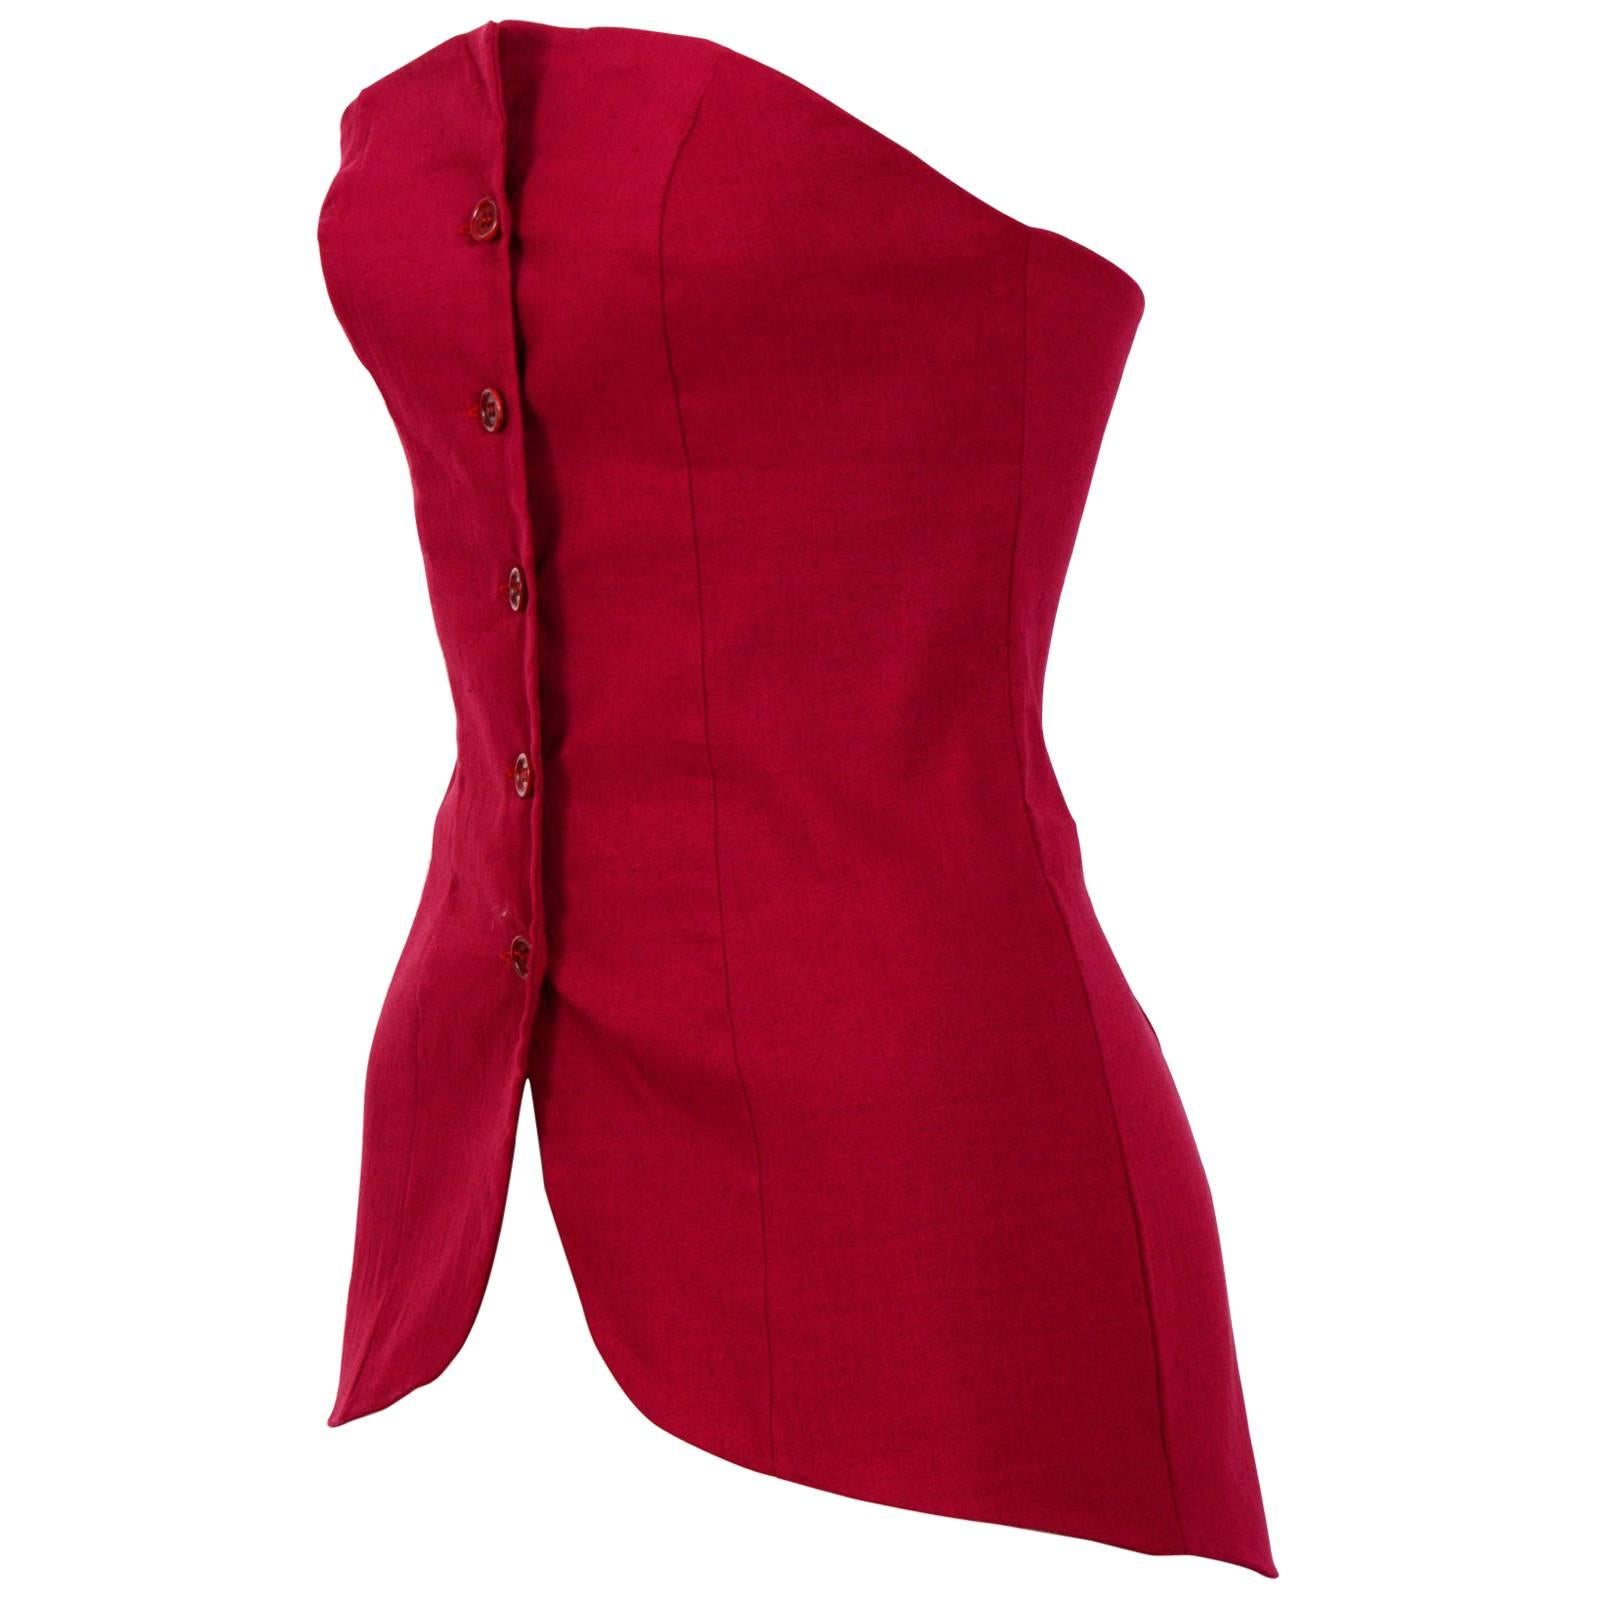 Romeo Gigli vintage red bustier top, 1990s